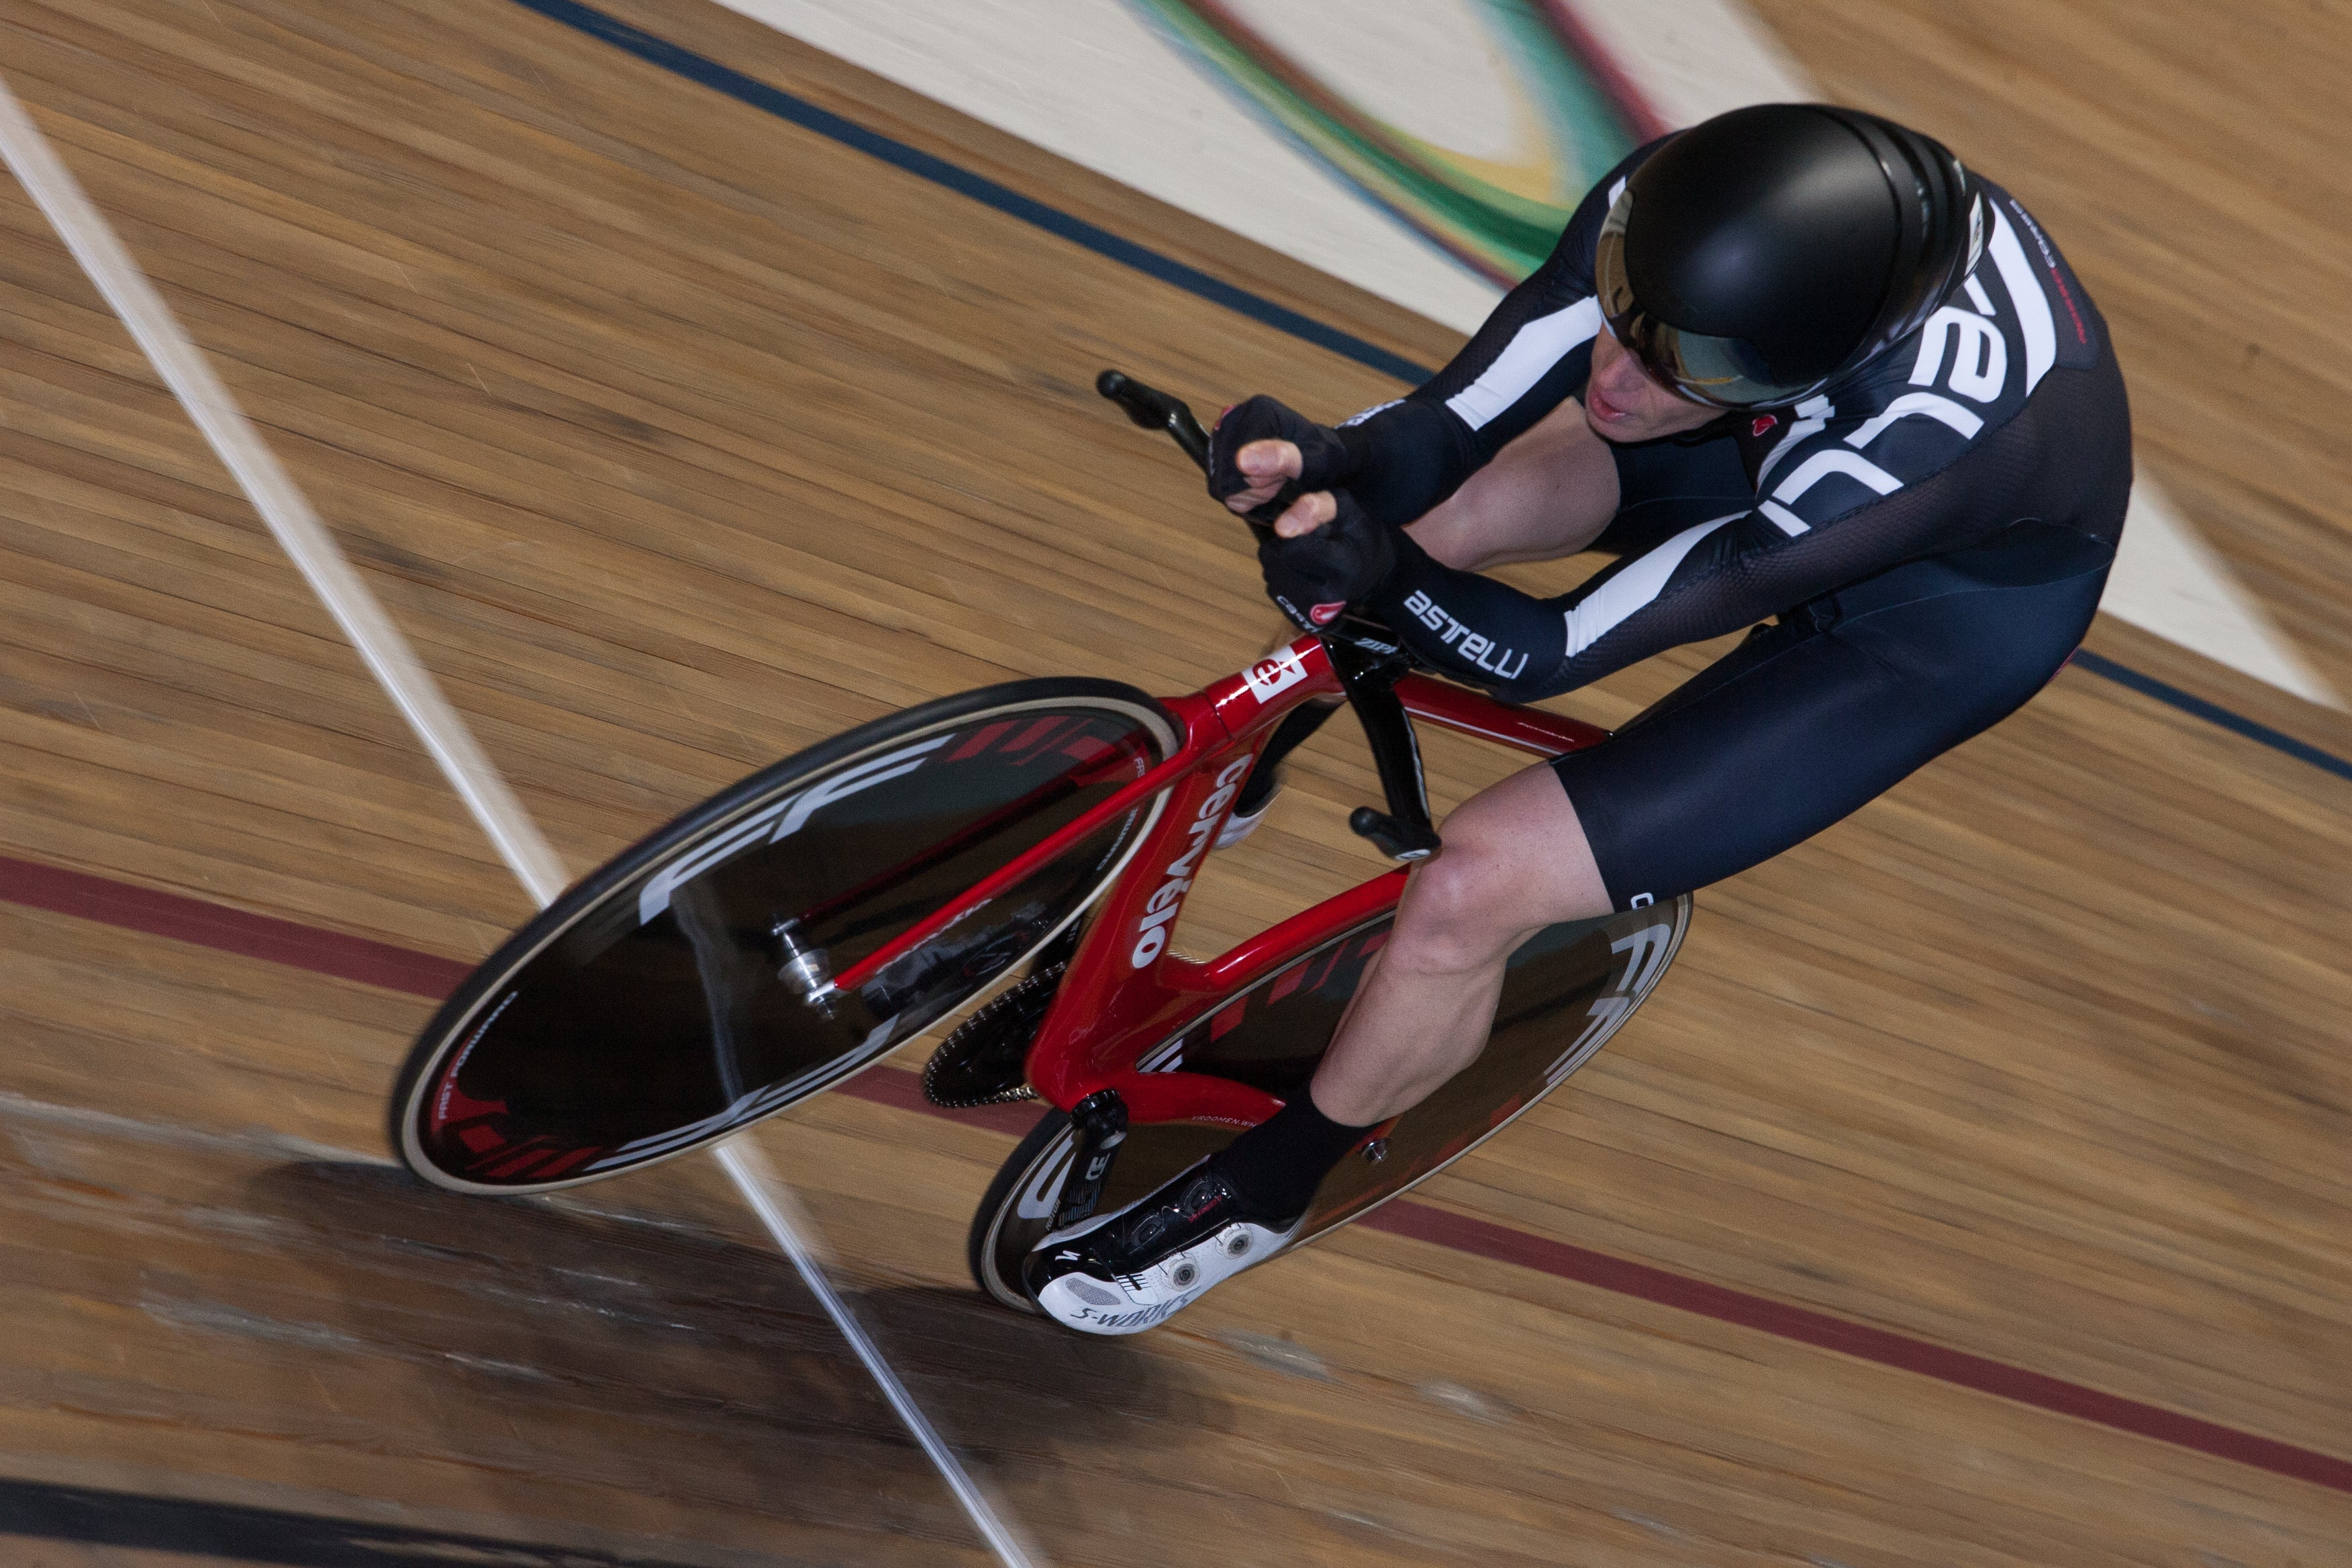 Getting my pain face on during my qualifying ride in the individual pursuit.